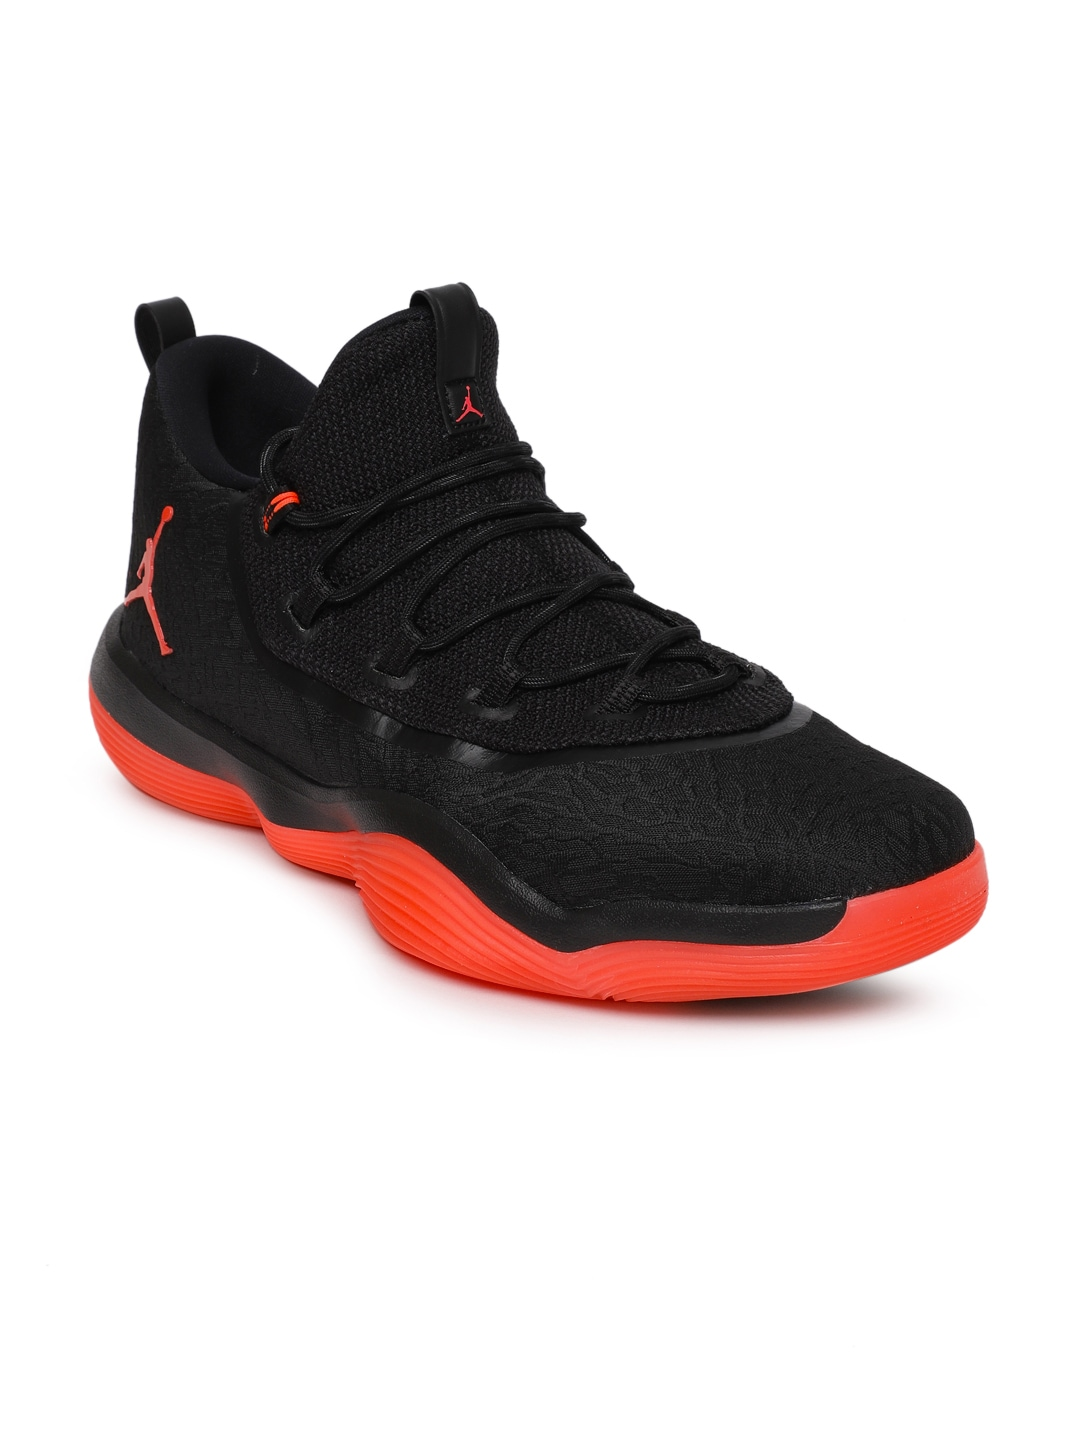 Jordan Shoes - Buy Jordan Shoes For Men Online in India  e4ab1a5dcb4f